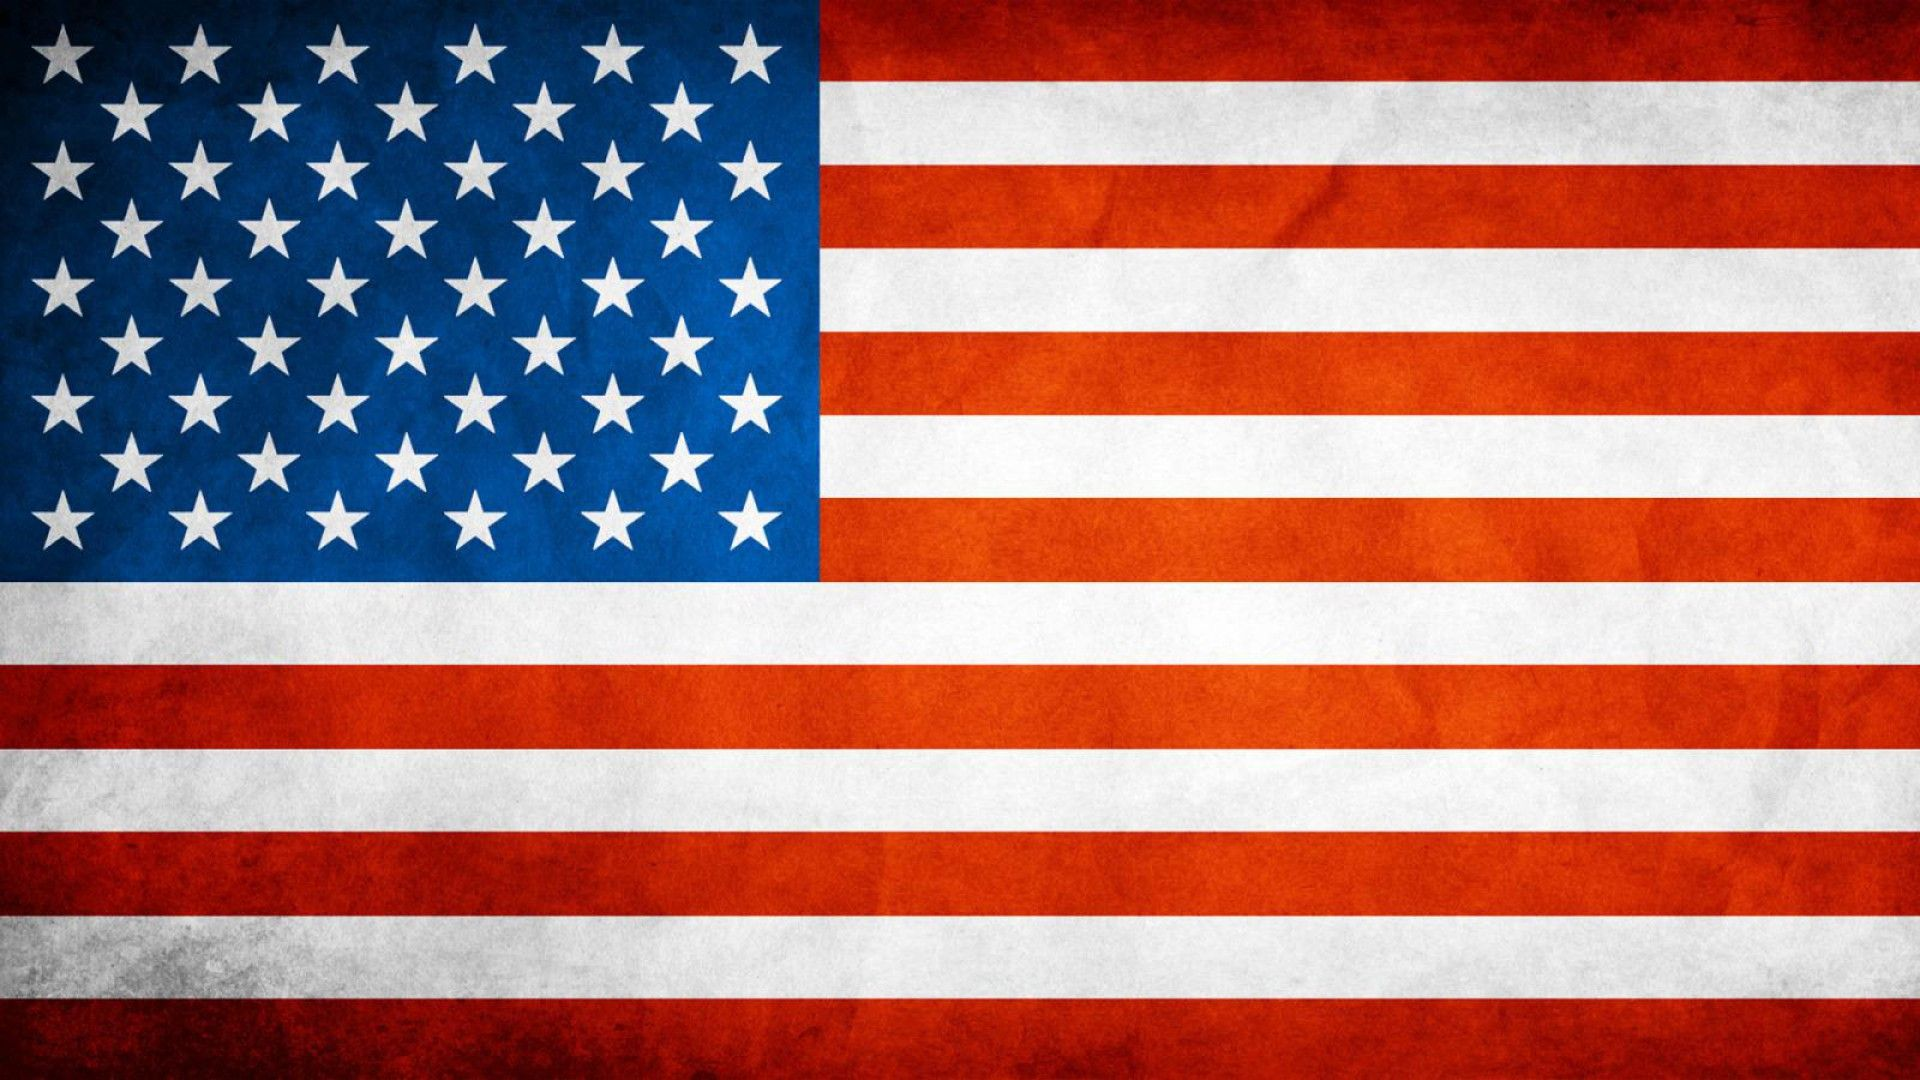 American Flag Wallpaper Google Search American Flag Images Usa Flag Images American Flag Wallpaper